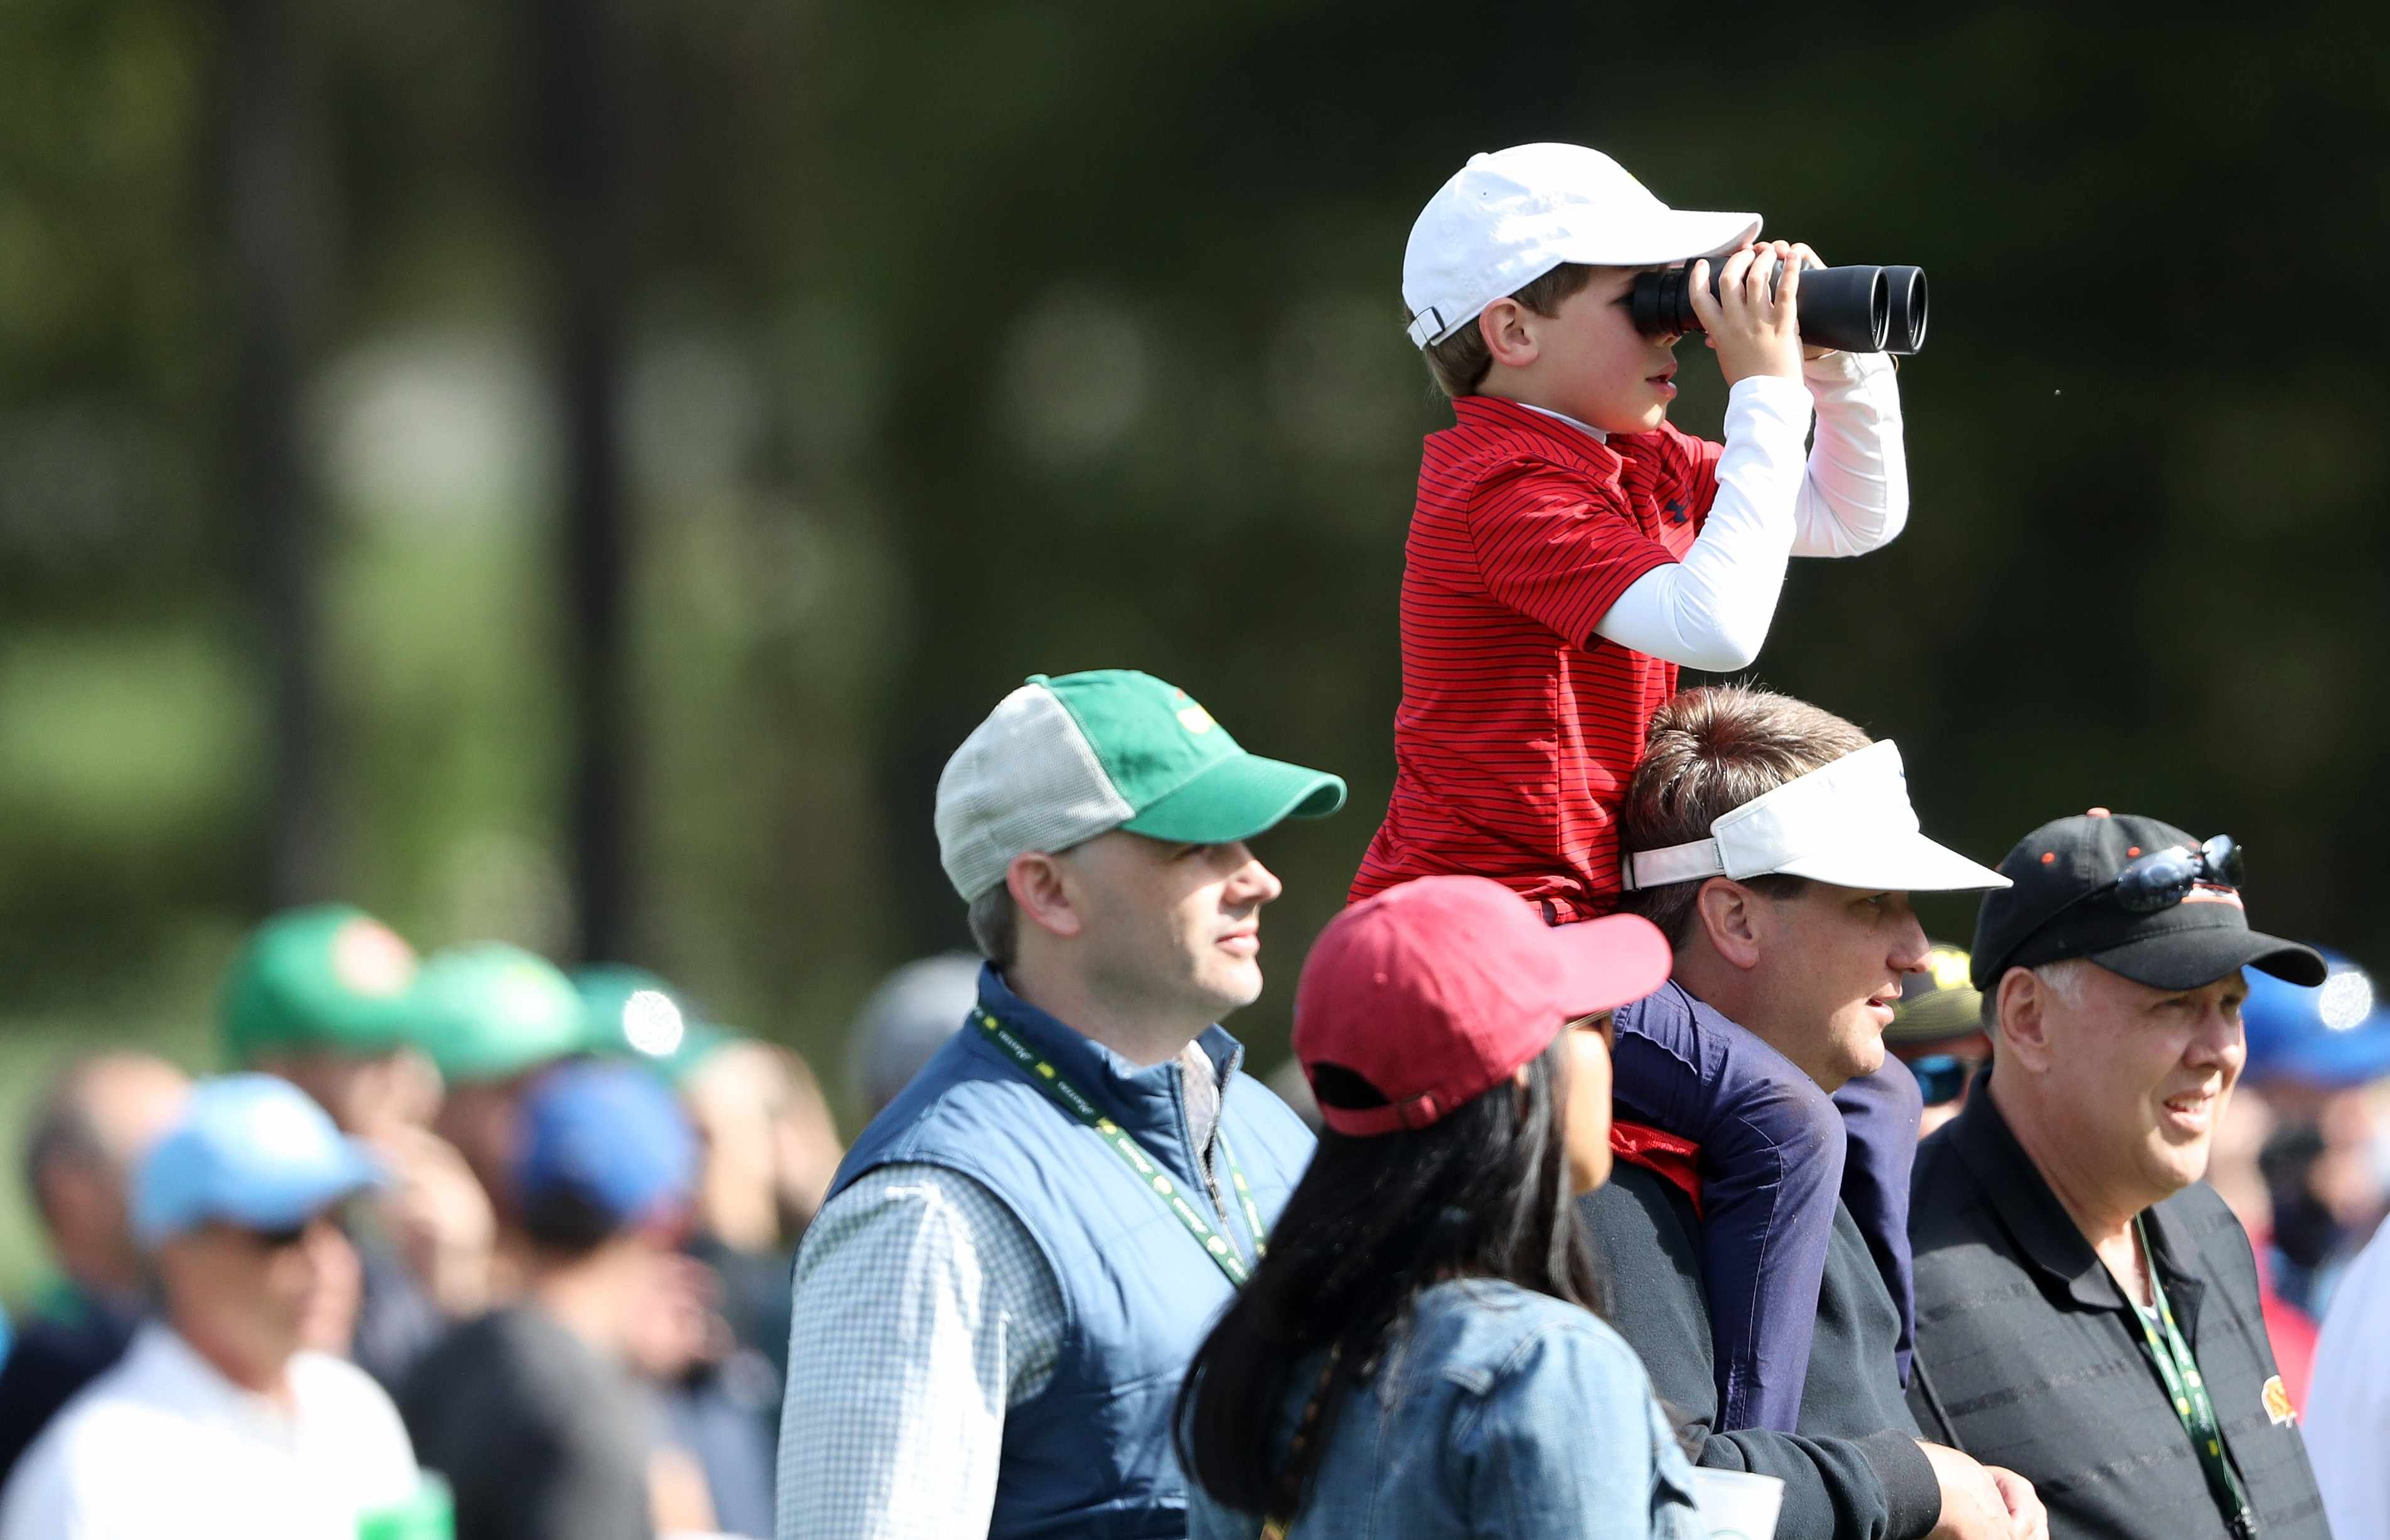 AUGUSTA, GA - APRIL 08:  A young patron uses binoculars to watch play during the final round of the 2018 Masters Tournament at Augusta National Golf Club on April 8, 2018 in Augusta, Georgia.  (Photo by David Cannon/Getty Images)